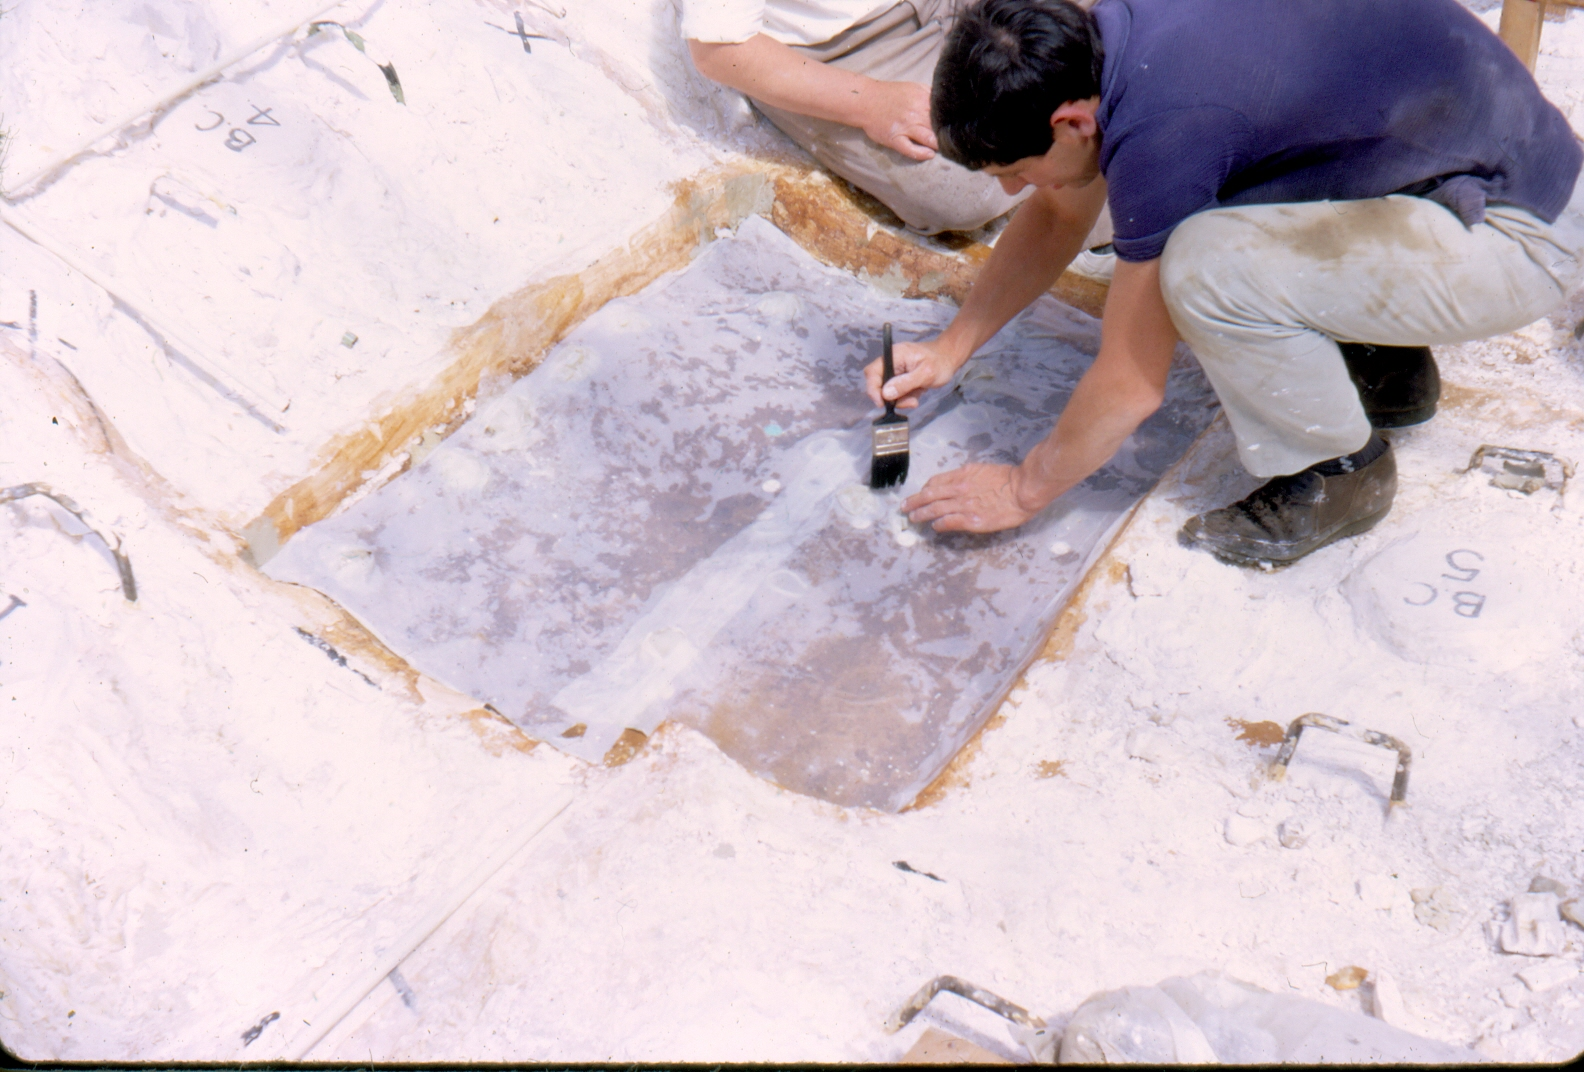 Peter Van Geersdaele preparing the surface of the impression of the ship before pouring the plaster of Paris. Copyright Andrew Oddy